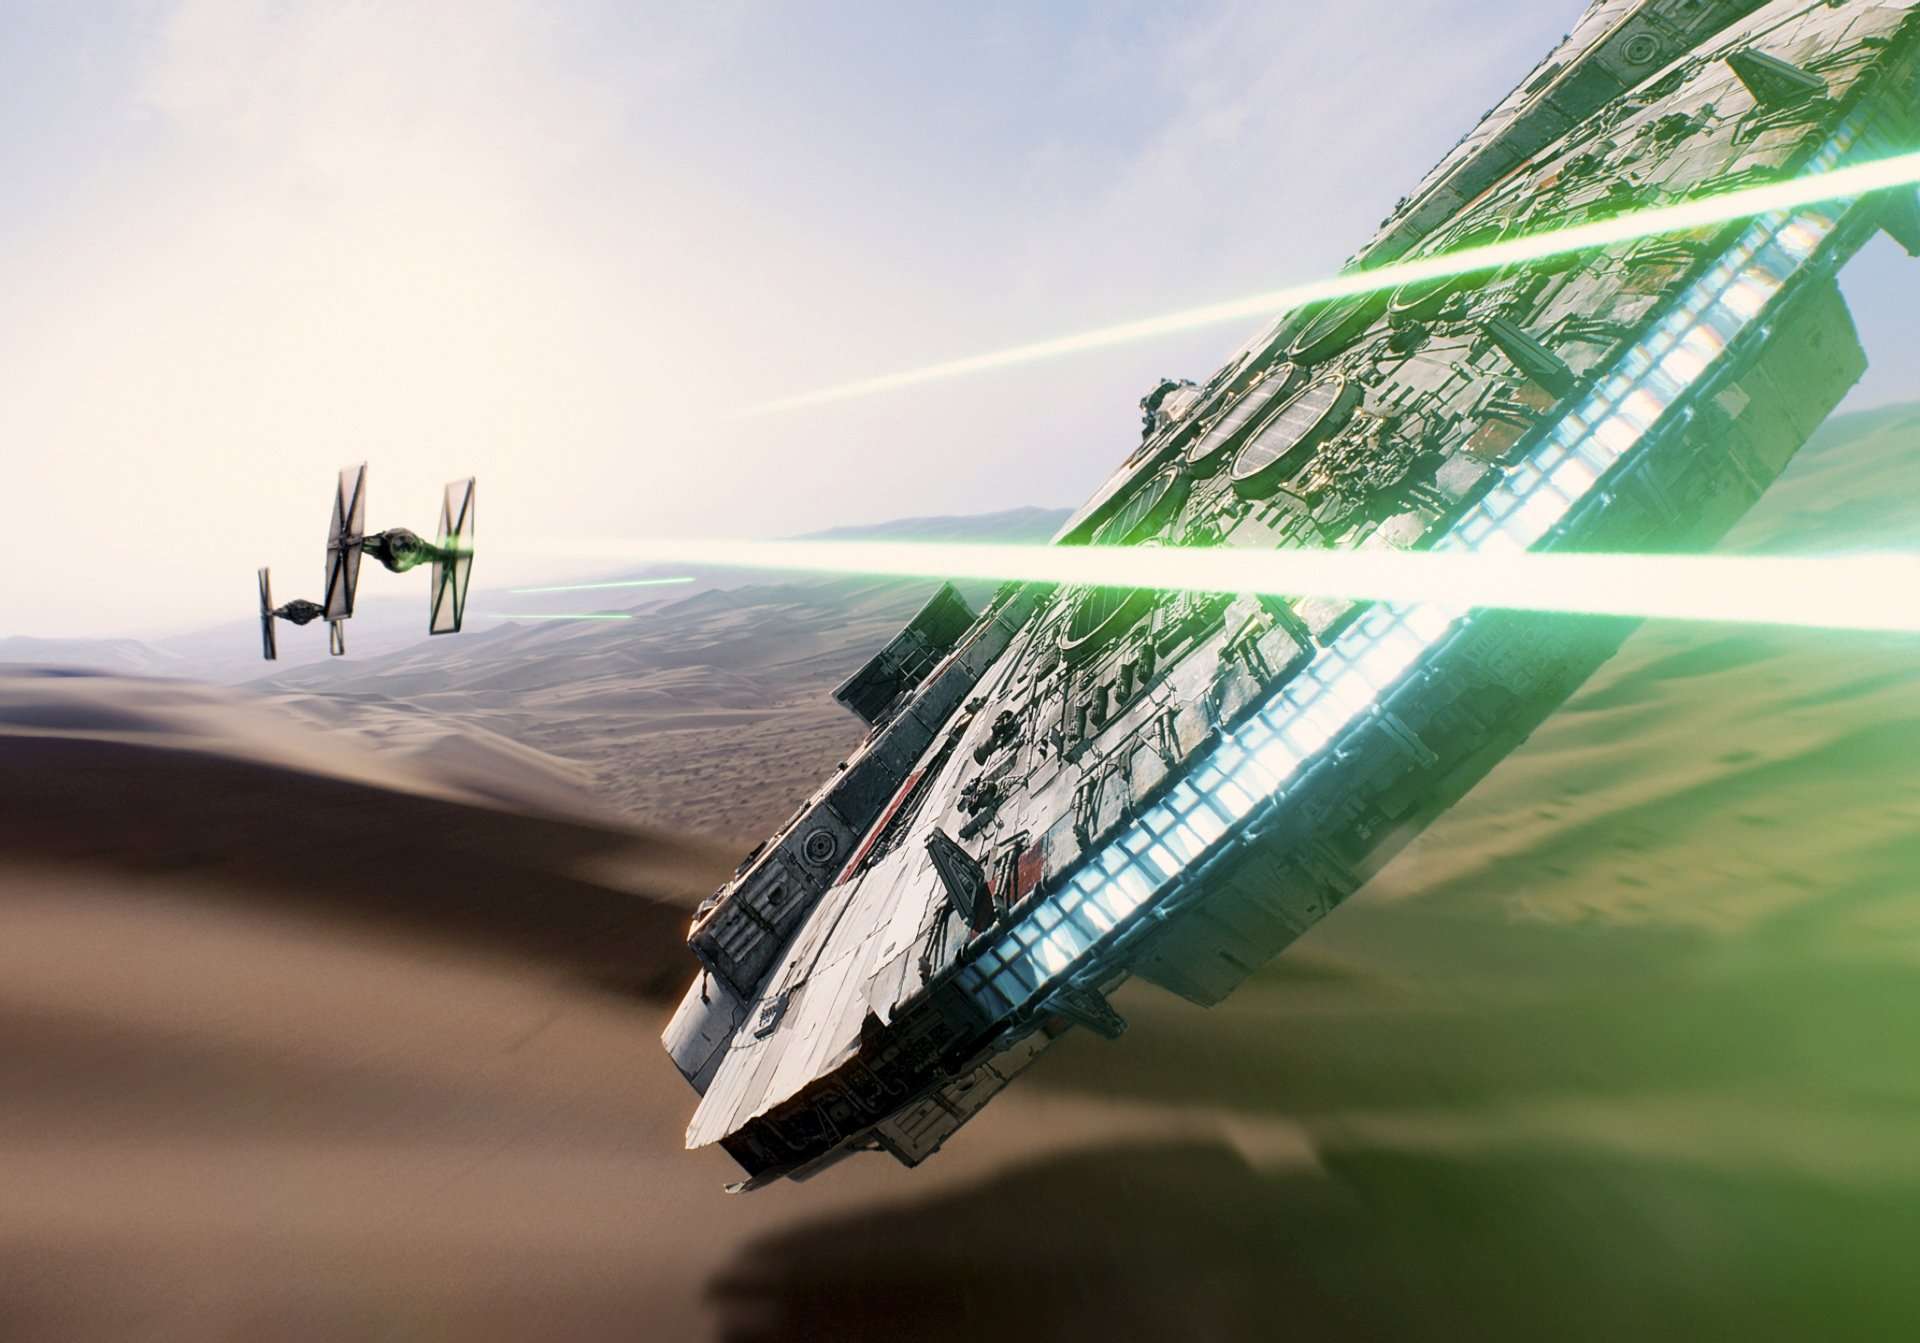 Movie - Star Wars Episode VII: The Force Awakens  Millennium Falcon TIE Fighter Star Wars Wallpaper